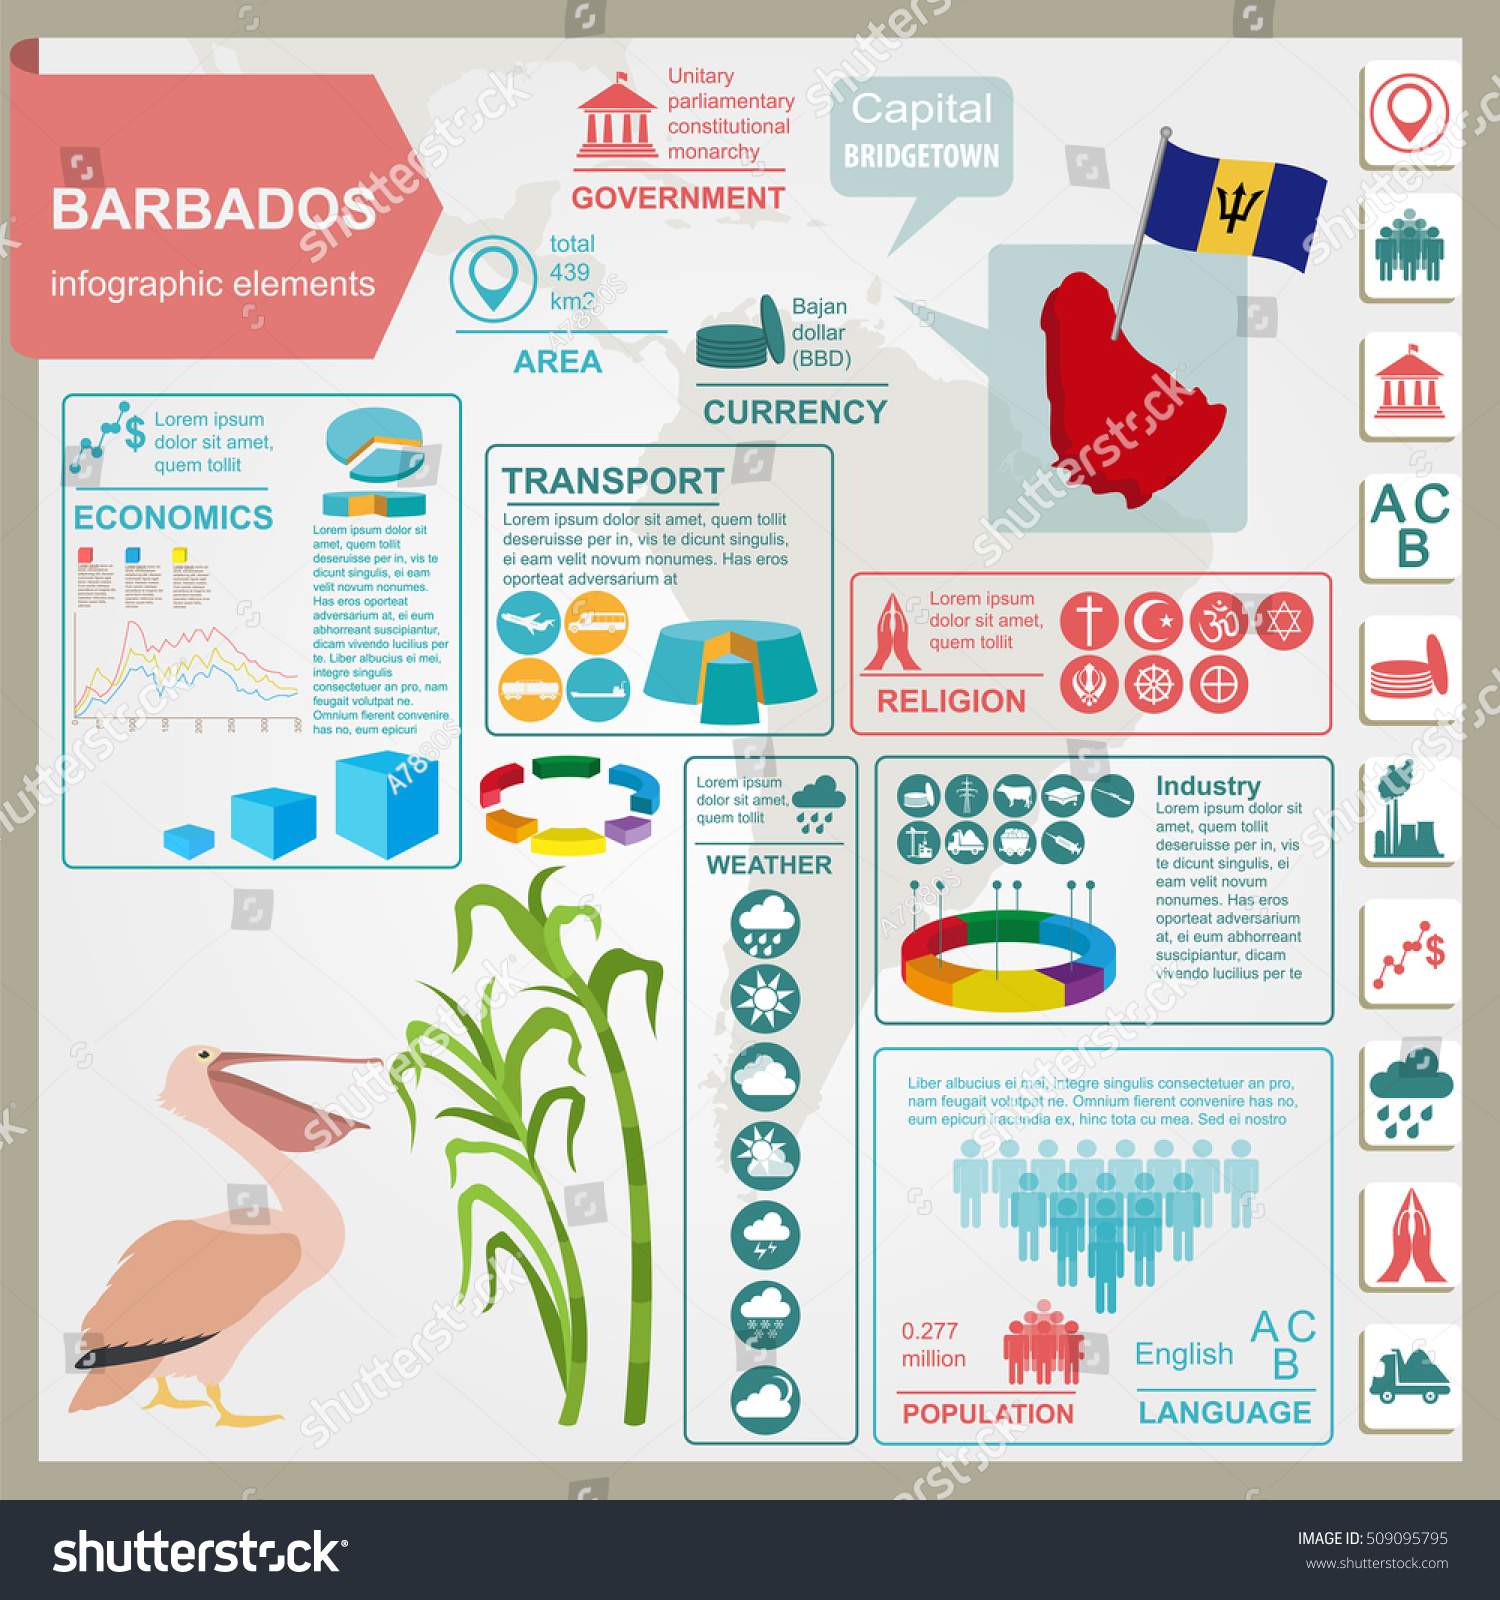 Barbados Infographics Statistical Data Sights Pelican Stock Vector